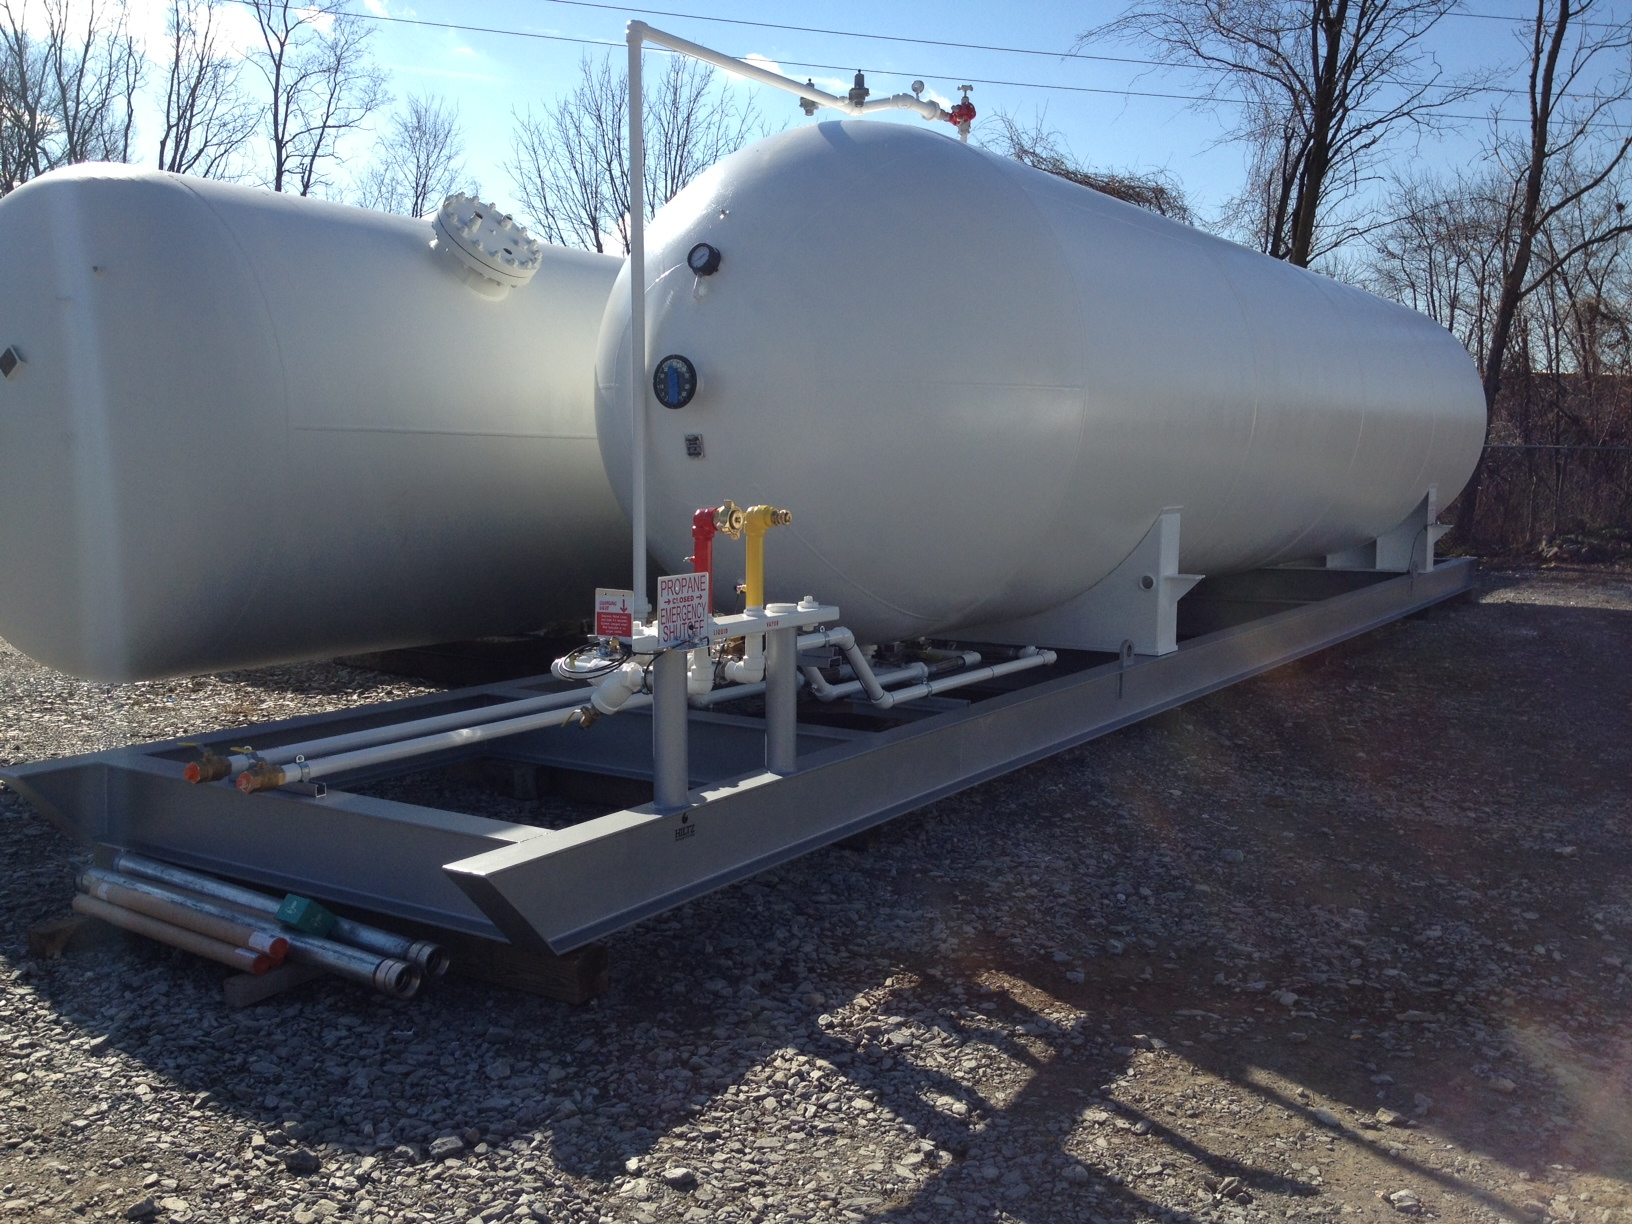 6000 To 30000 Gallon Skid Tanks In Inventory Hiltz